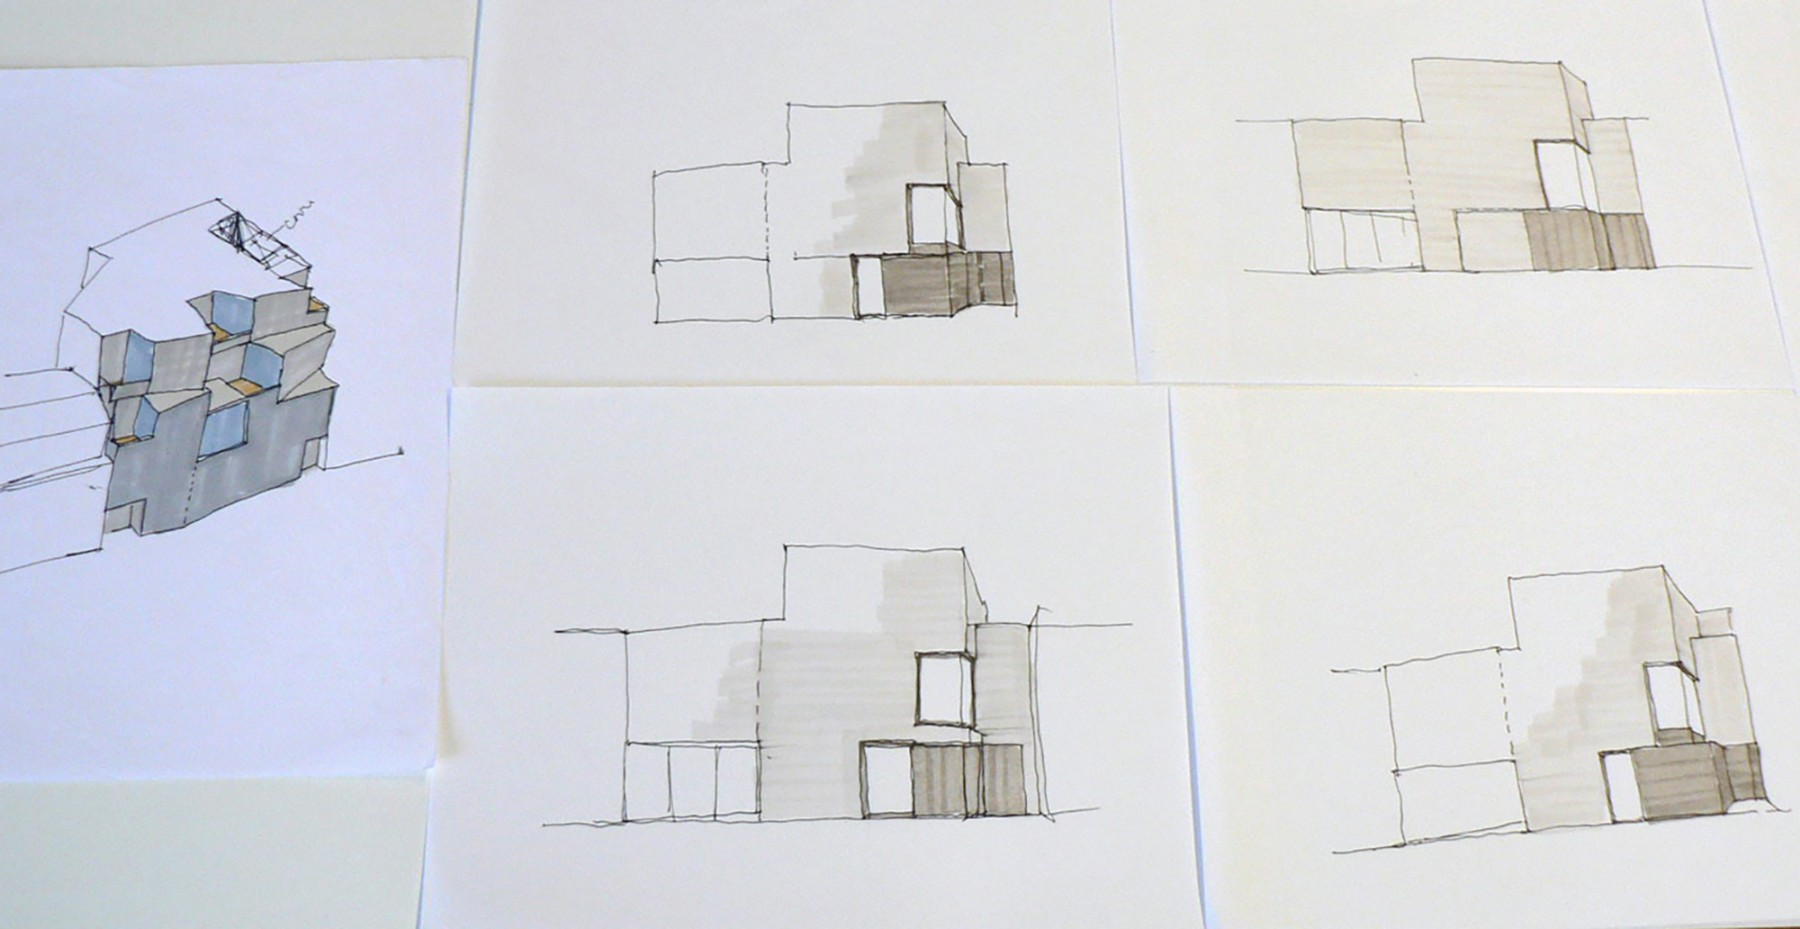 Jamie-Fobert-Architects-C4RD-Exhibition-Architecture-Sketch-Books-sketches-trace